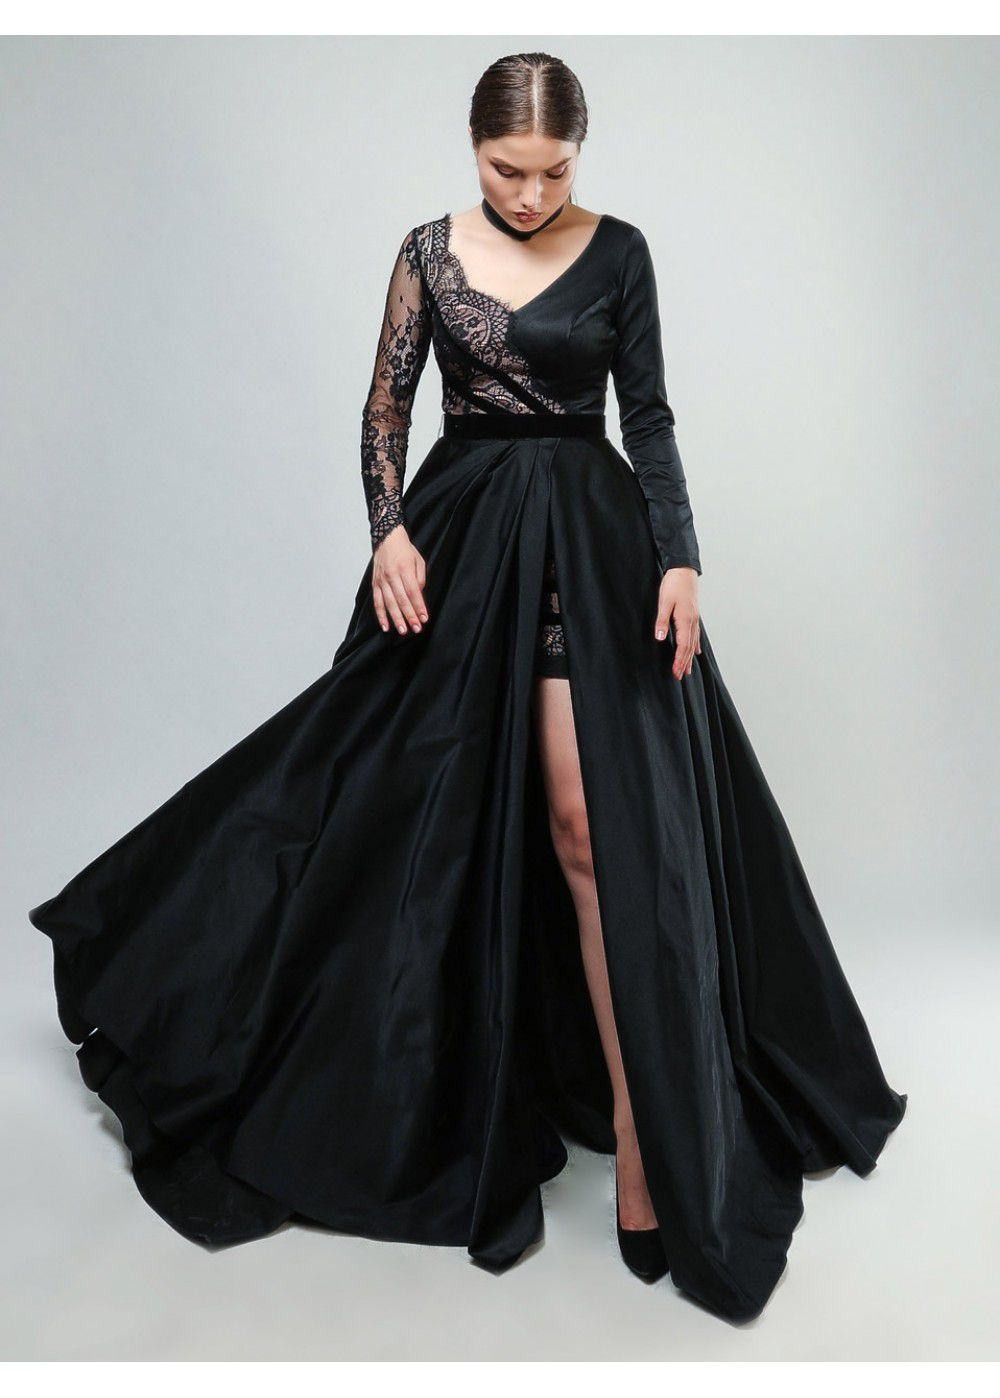 Maleone Dress Black with Guipure